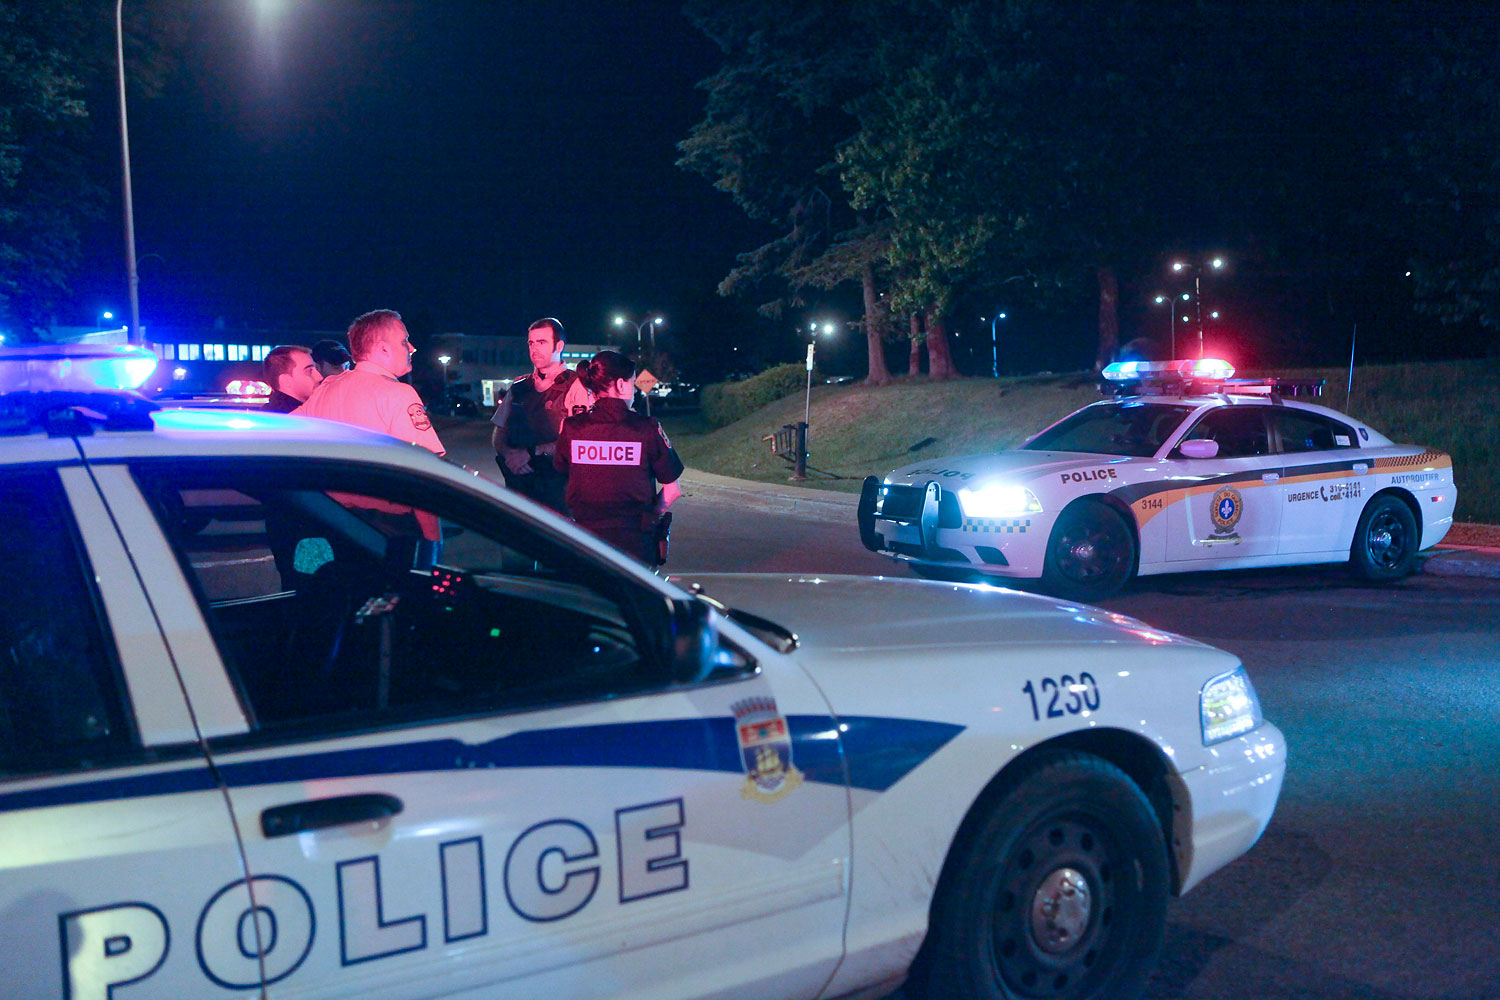 Police cars are seen in front of the Orsainville Detention Center near Quebec City on Saturday, June 7, 2014. Three inmates have escaped from the center with the help of a helicopter, police said late Saturday.